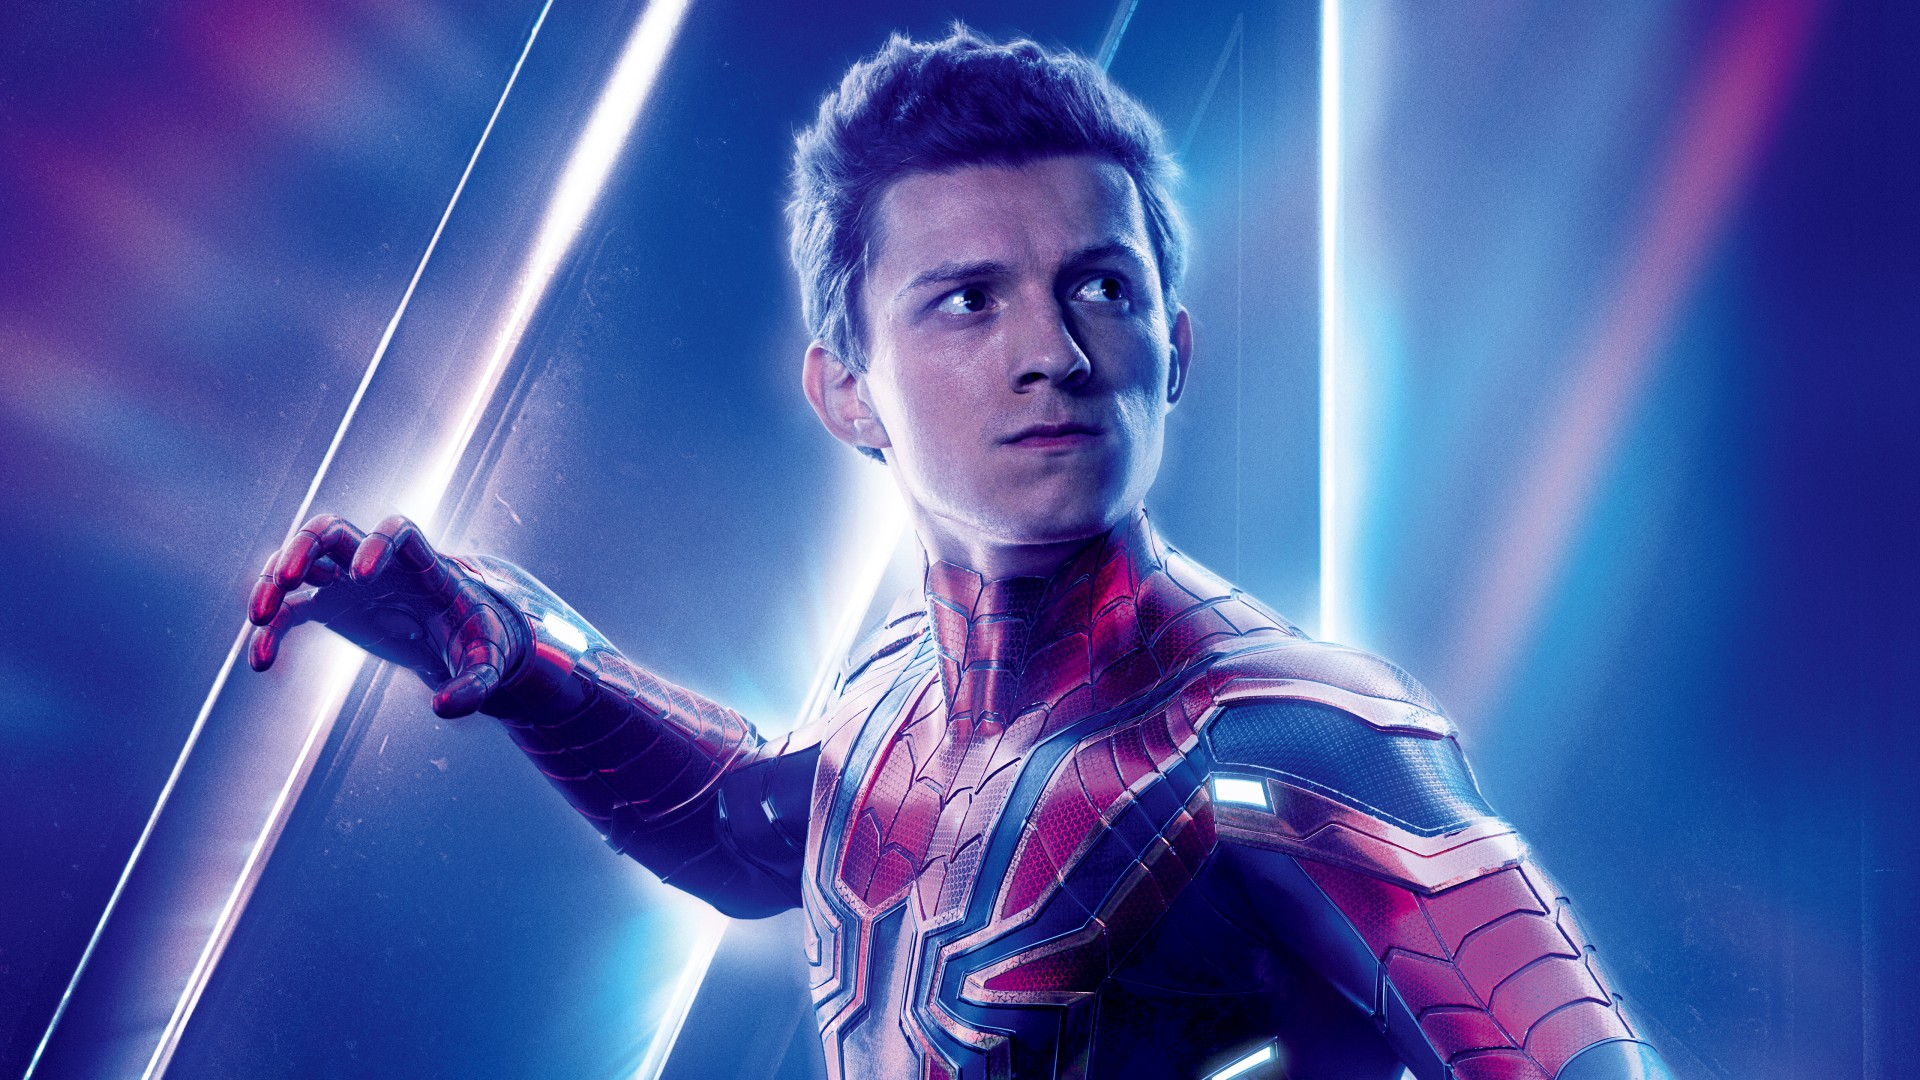 Tom Holland As Spiderman In Avengers Infinity War Download 1920x1080